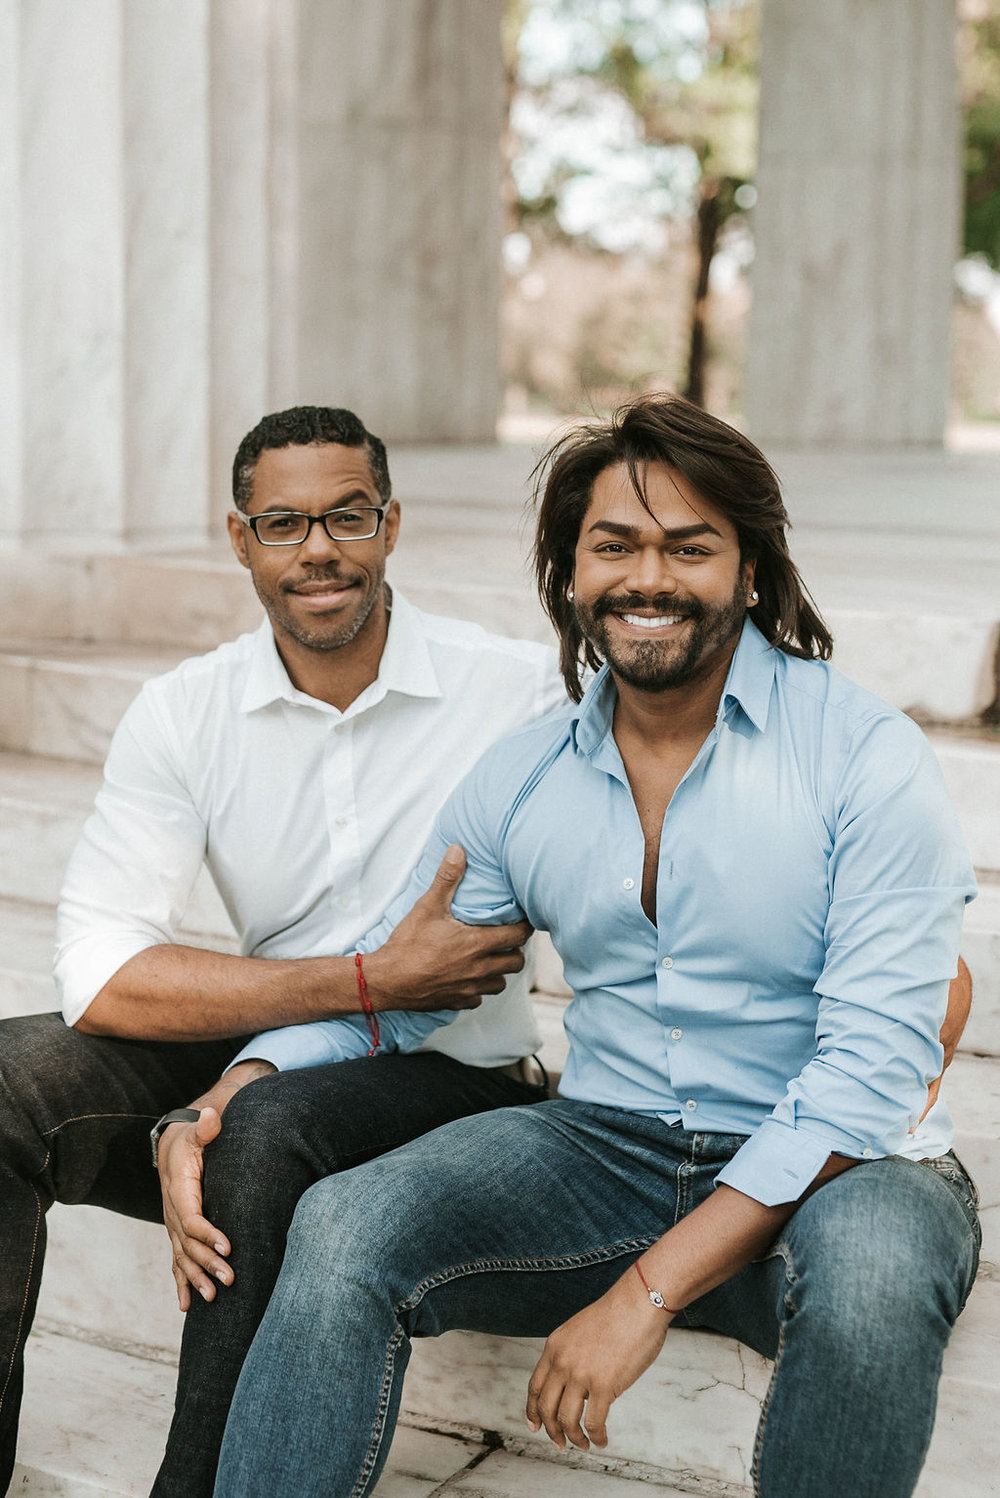 couple smiling during an engagement session at the National Portrait Gallery